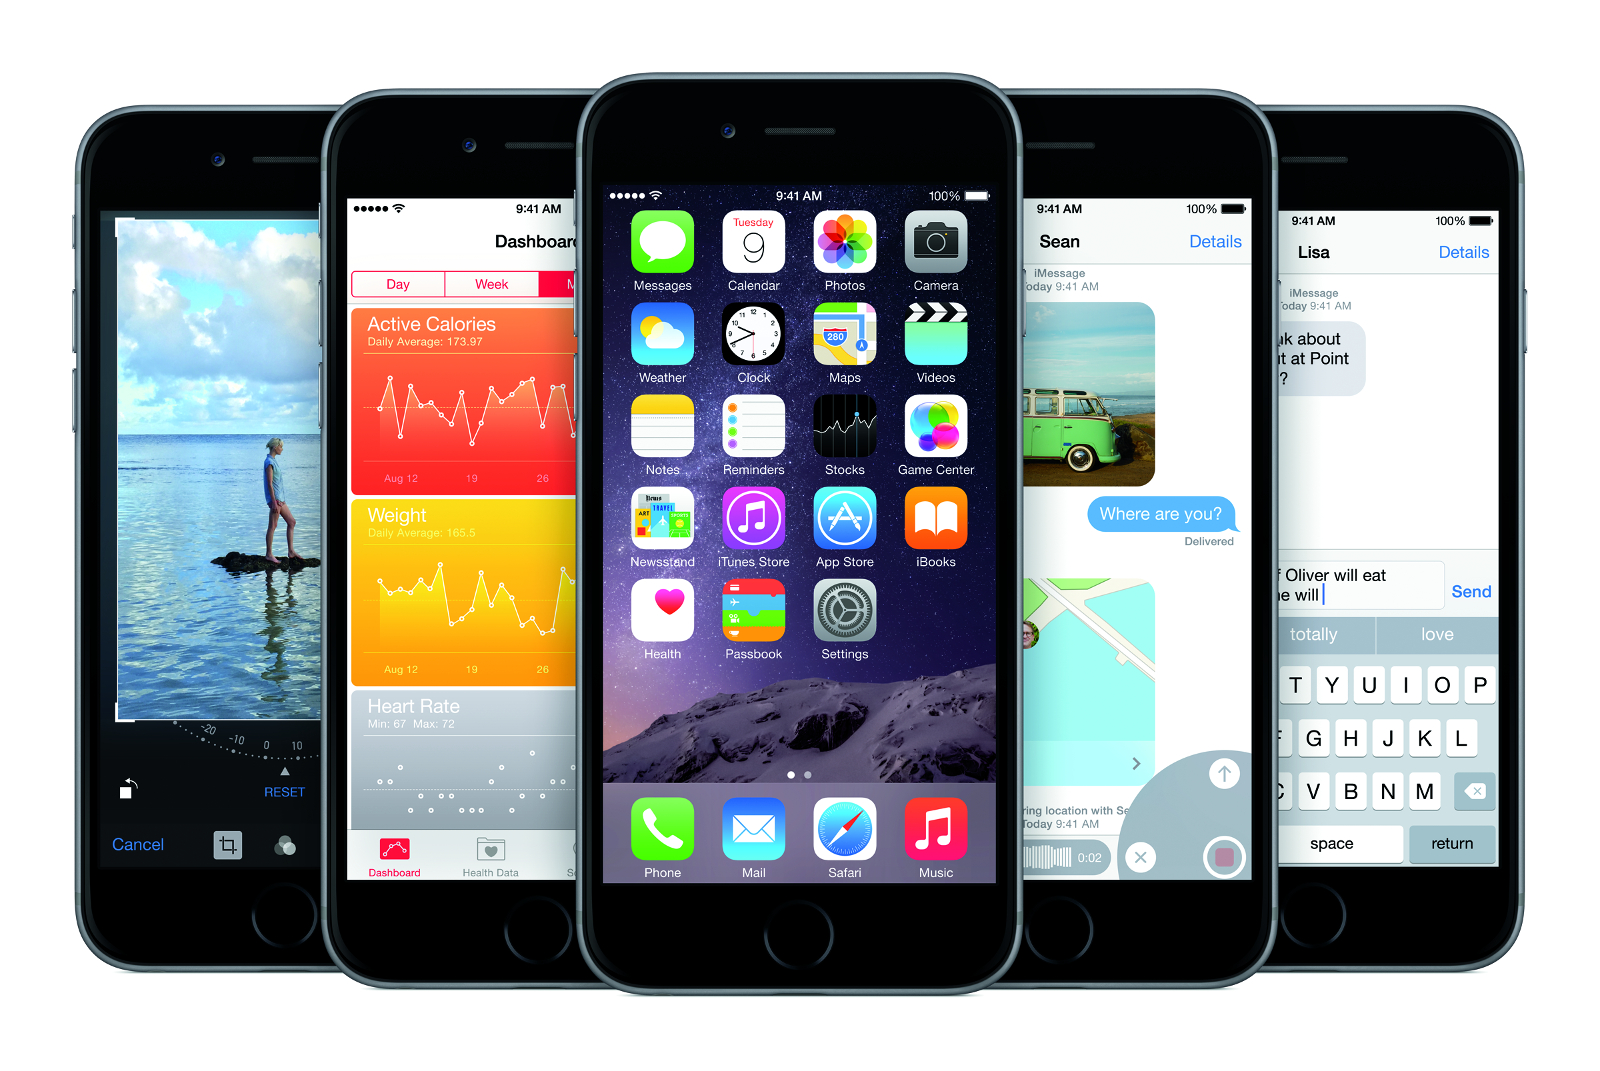 iOS 8: Five Amazing Hidden Features For Apple iPhone, iPad and iPod